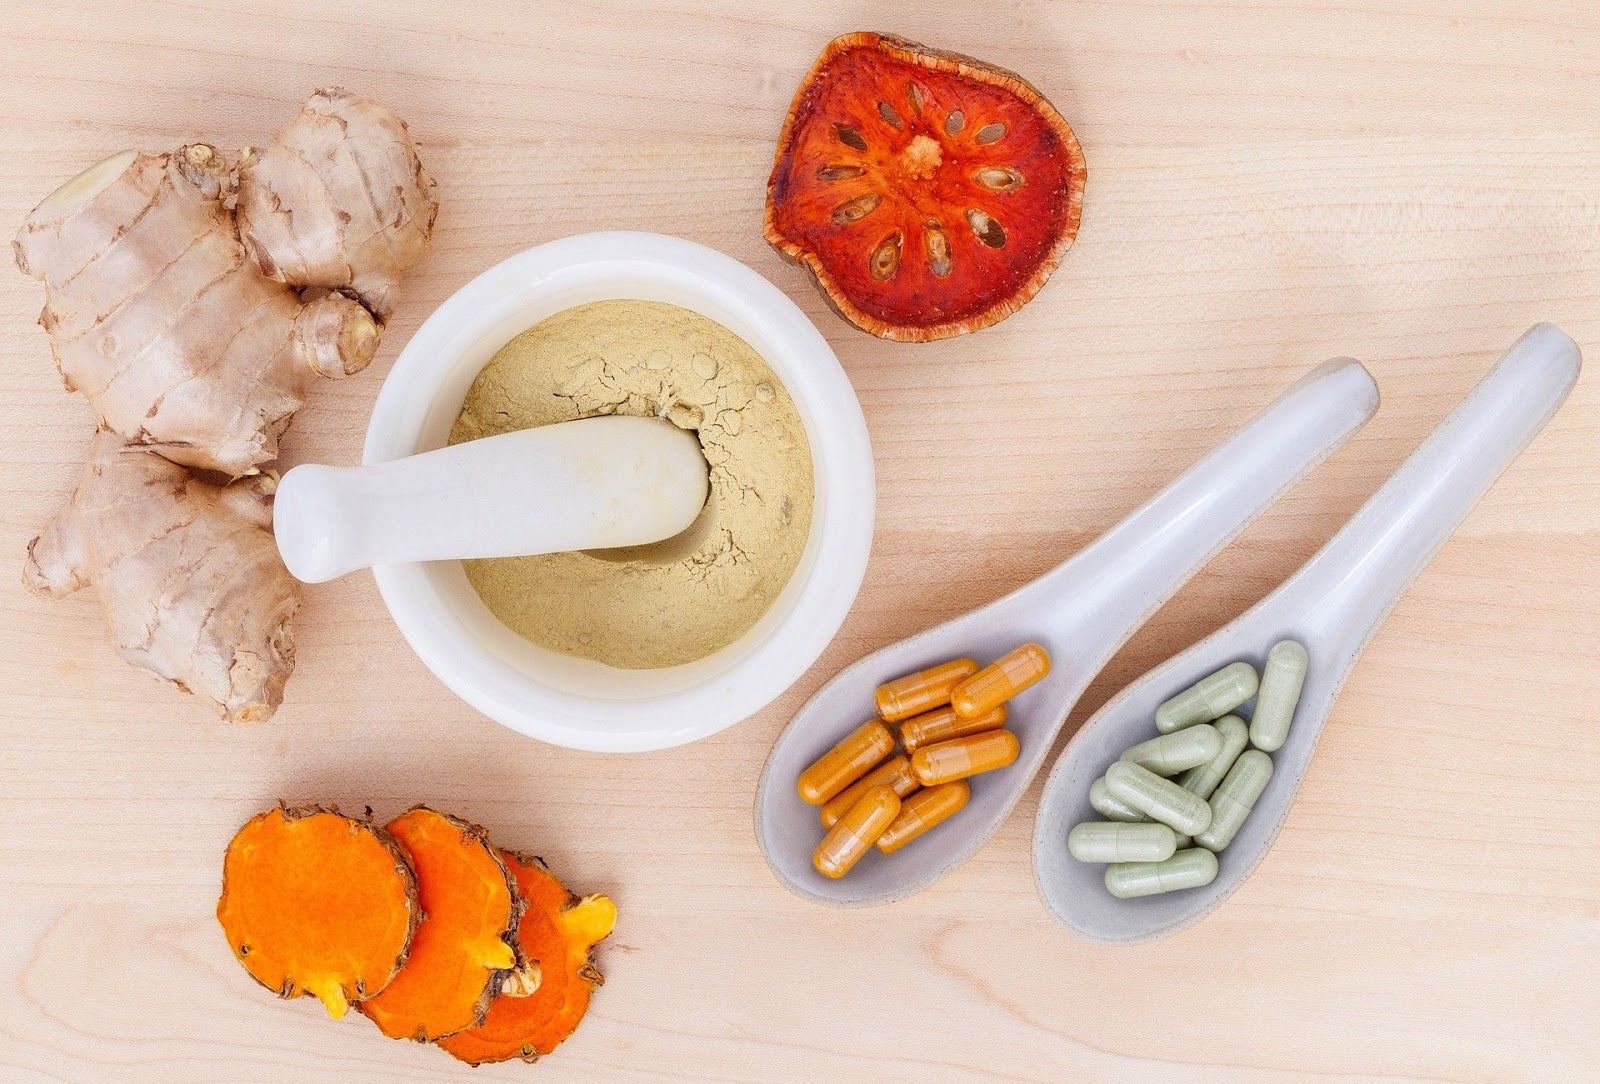 Supplements for inflammation: herbs in a mortar and pestle